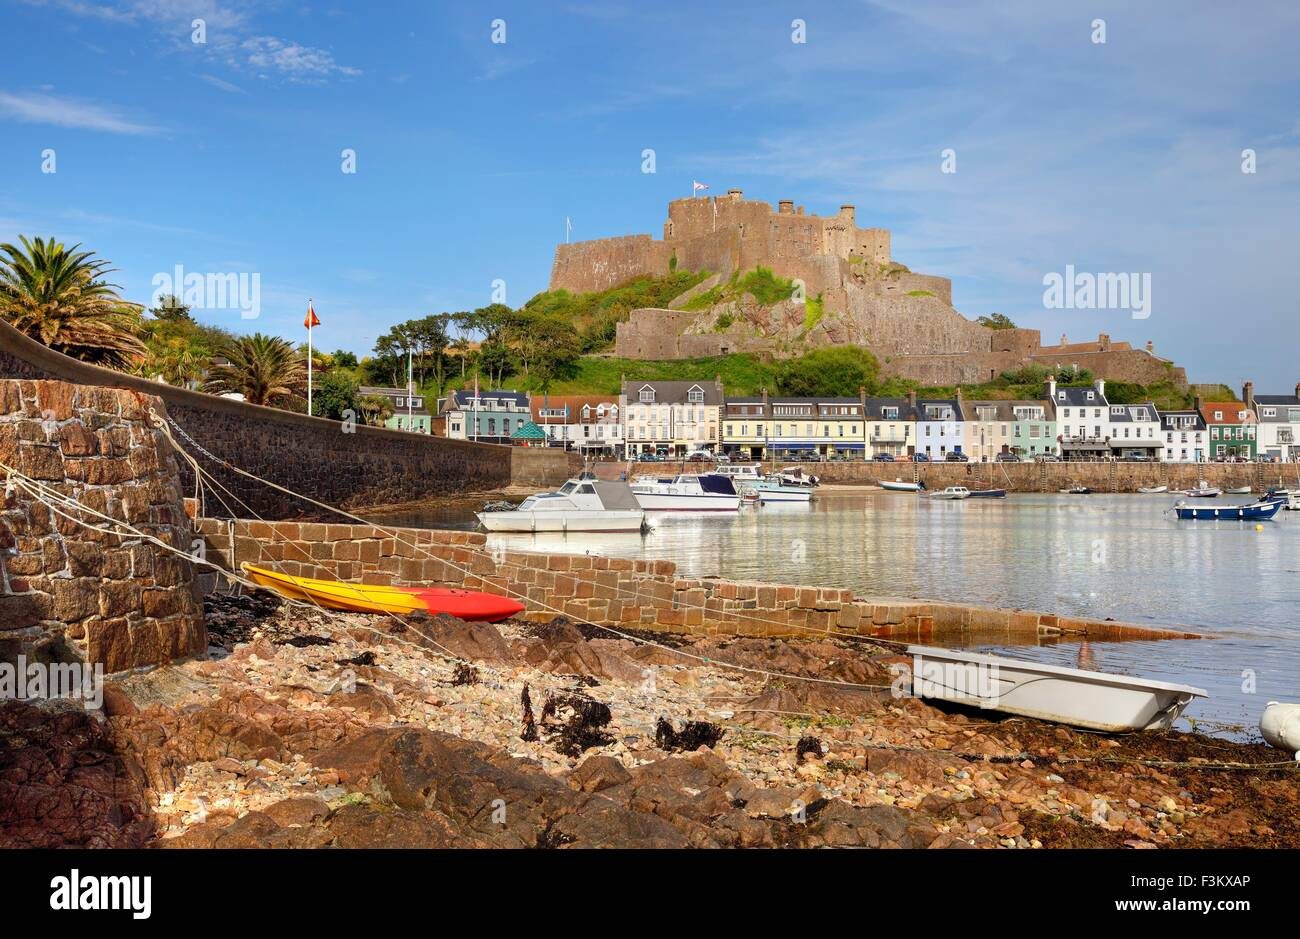 Mont Orgueil Castle at Gorey, Jersey, Channel Islands, Great Britain - Stock Image